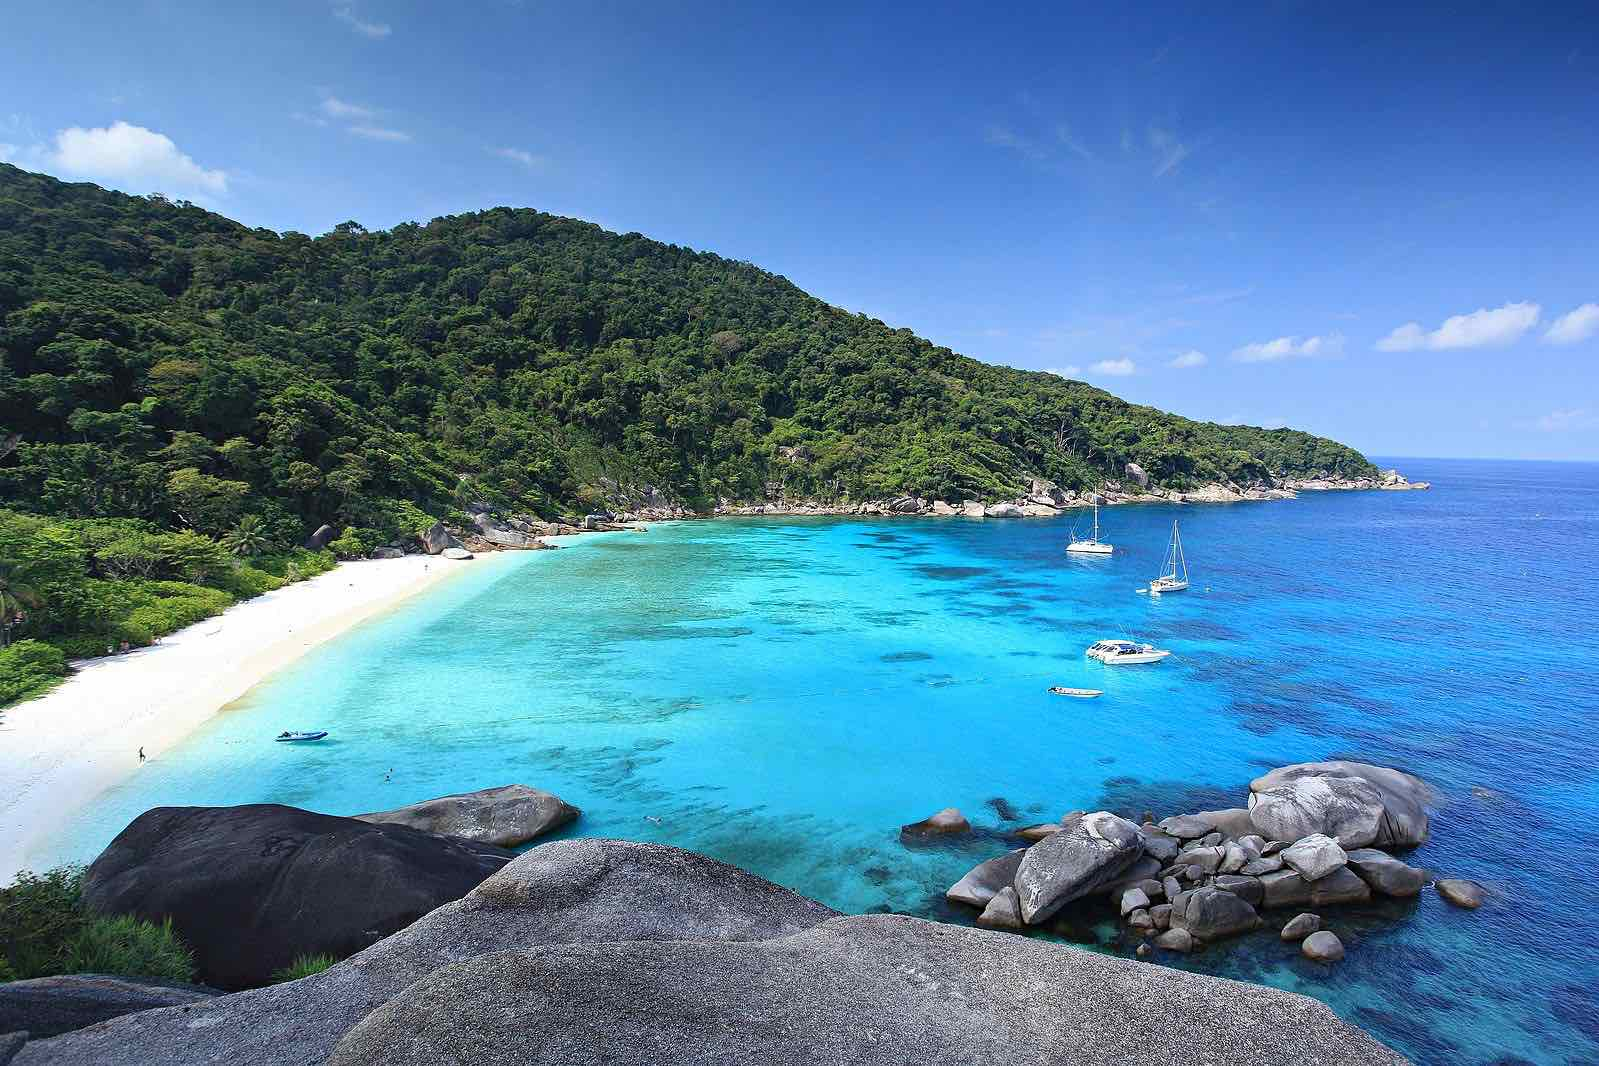 andaman sea islands thailand andaman coast similan islands